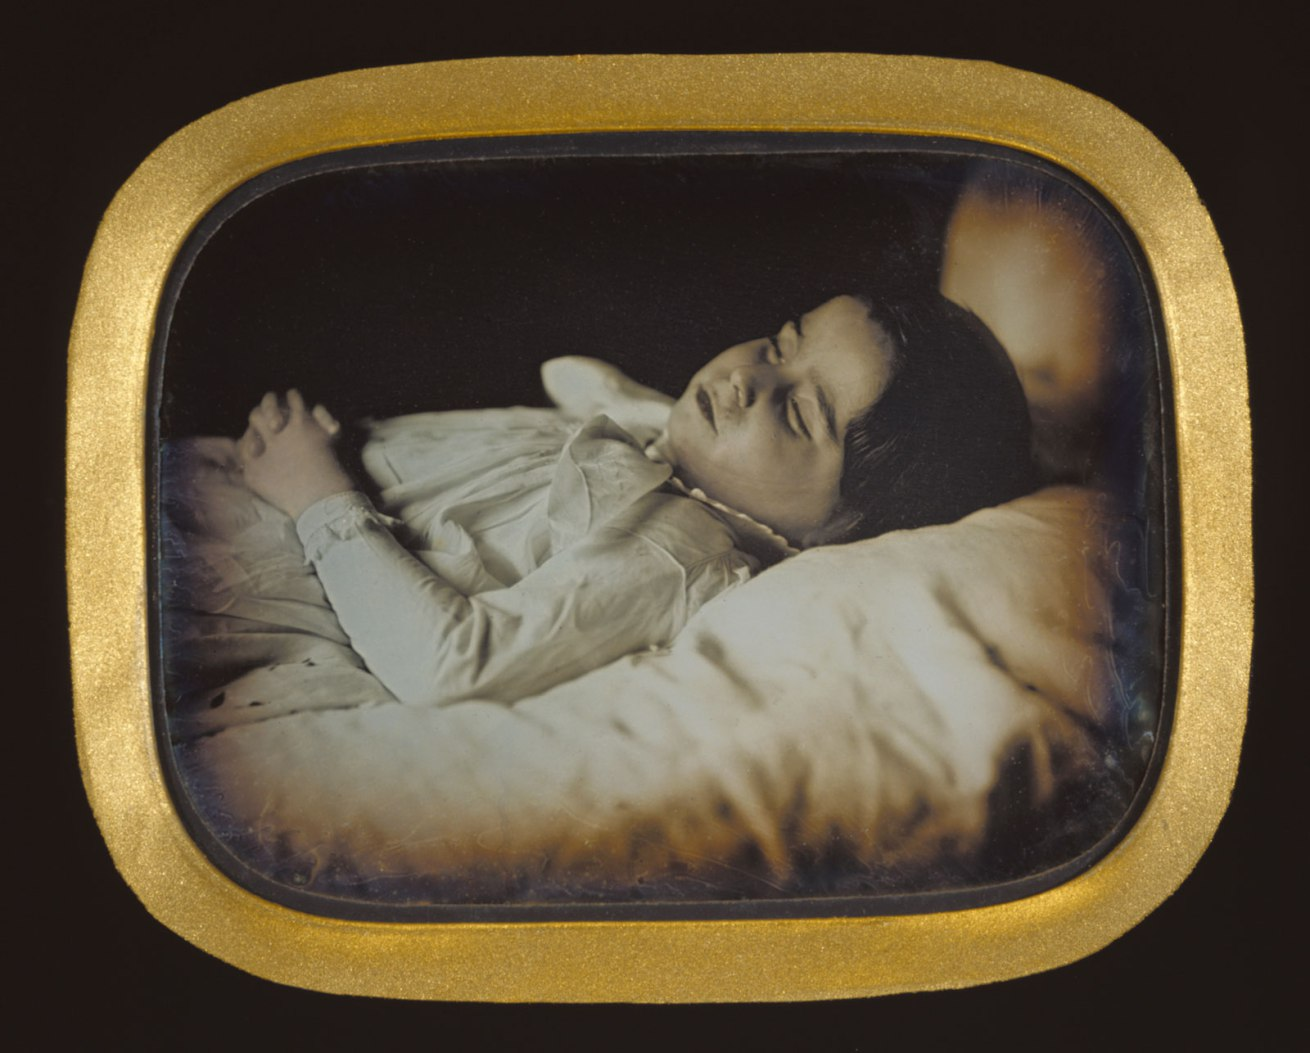 Fotó: Carl Durheim (Swiss, 1810-1890)<br />Postmortem of a Child<br />c. 1852<br />Daguerreotype, hand-colored<br />1/4 plate<br />Image: 6.8 x 9.4 cm (2 11/16 x 3 11/16 in.)<br />Object (whole): 12.7 x 15.1 cm (5 x 5 15/16 in.)<br />The J. Paul Getty Museum, Los Angeles